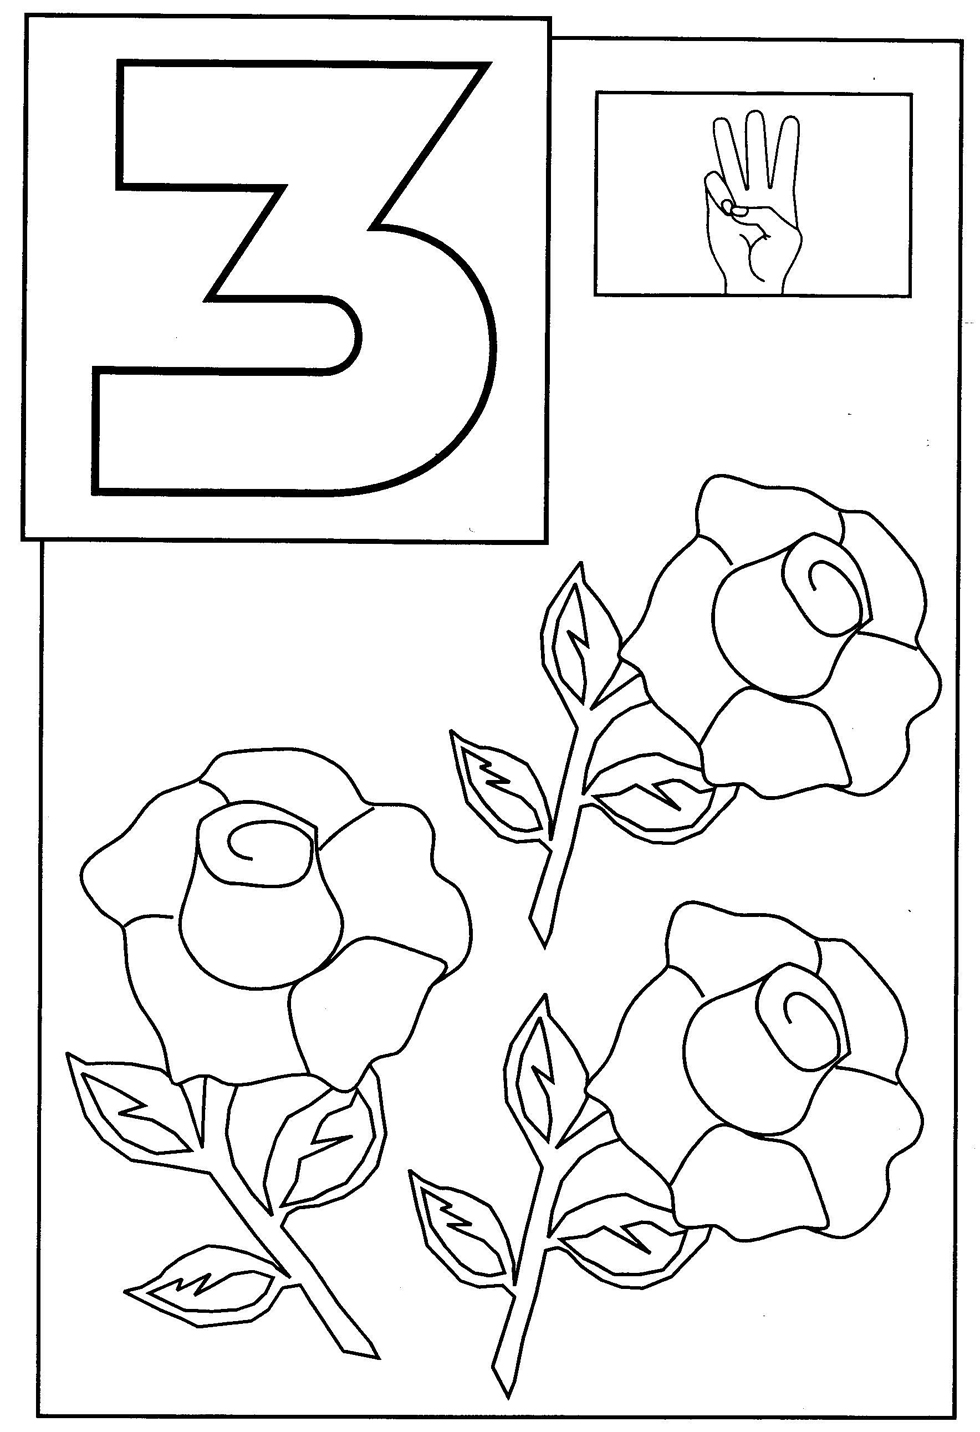 Toddler Coloring Pages | number coloring pages for kindergarten